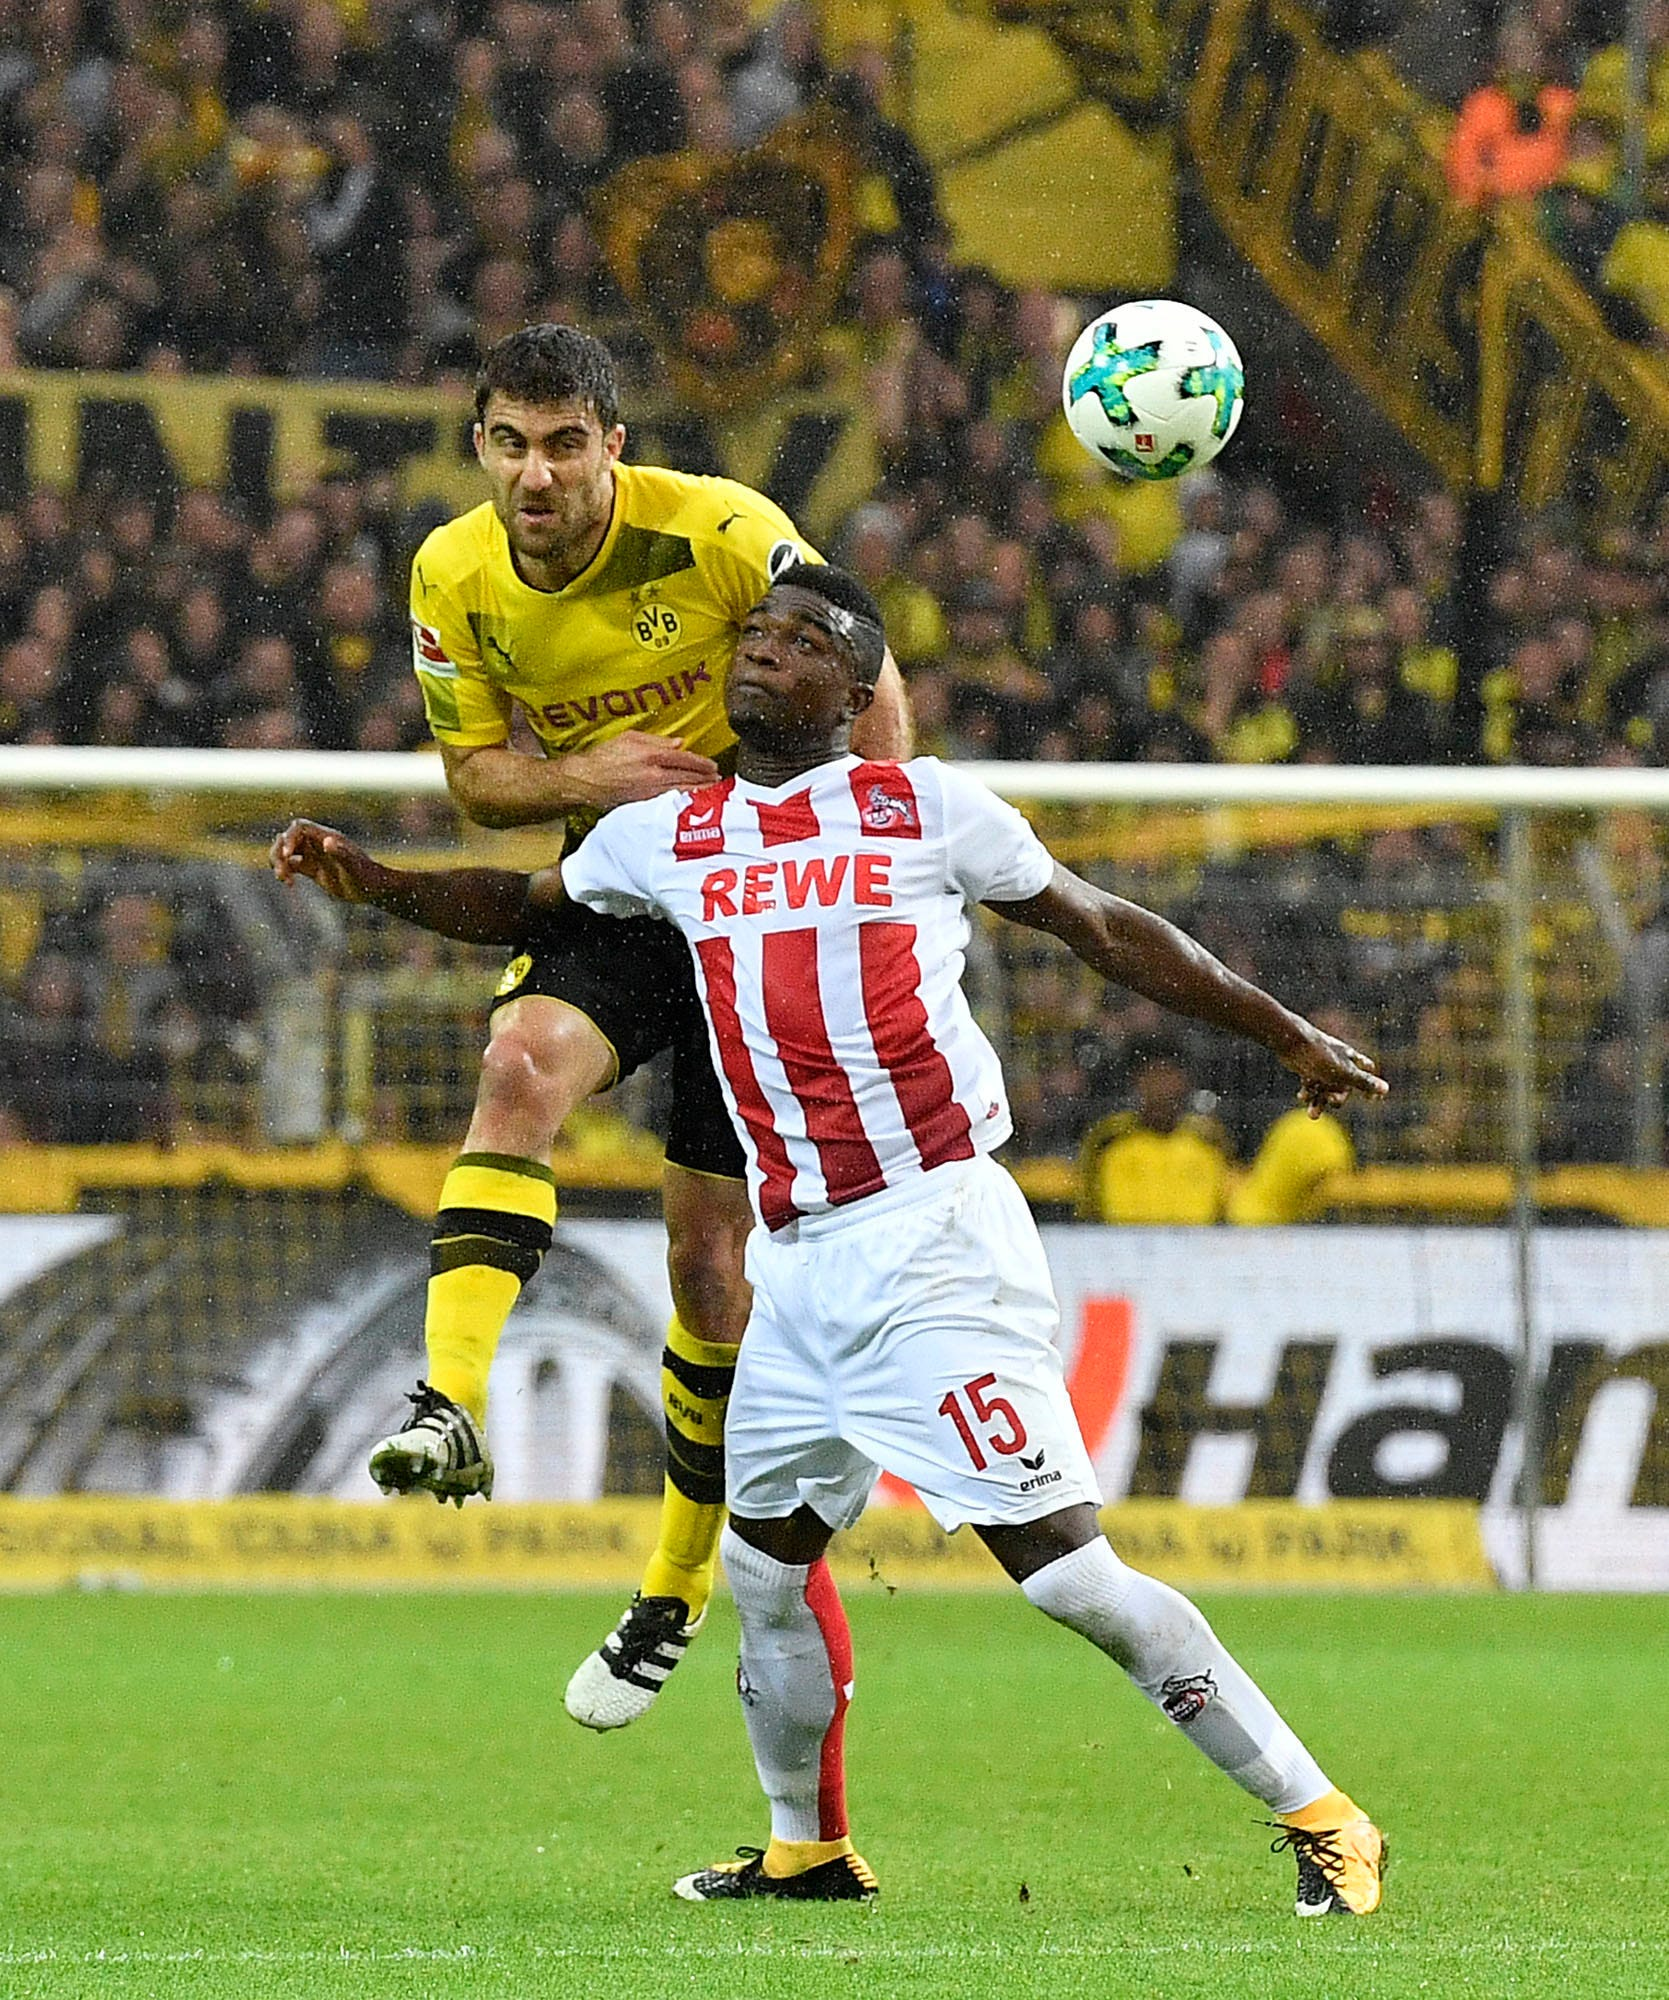 Video ref helps Dortmund thrash Cologne in Bundesliga